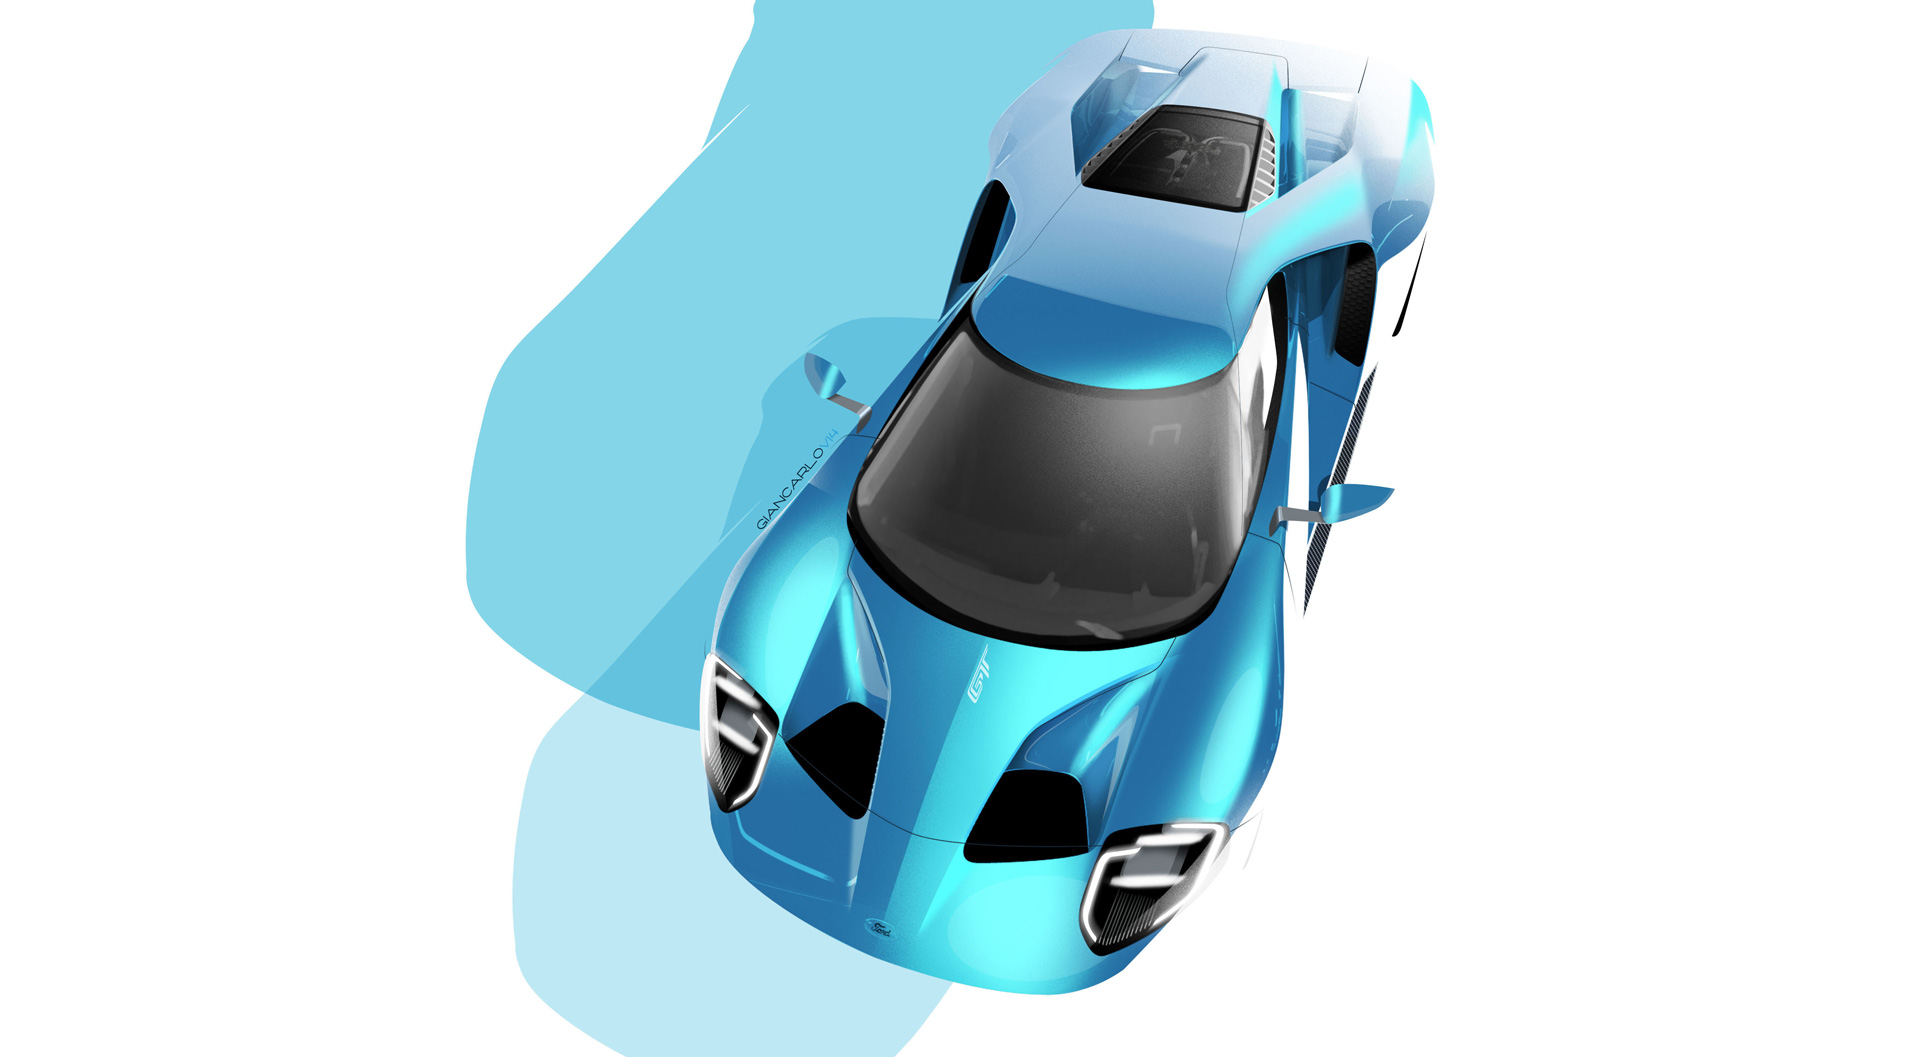 2016 All-New Ford GT - sketch exterieur - Ford